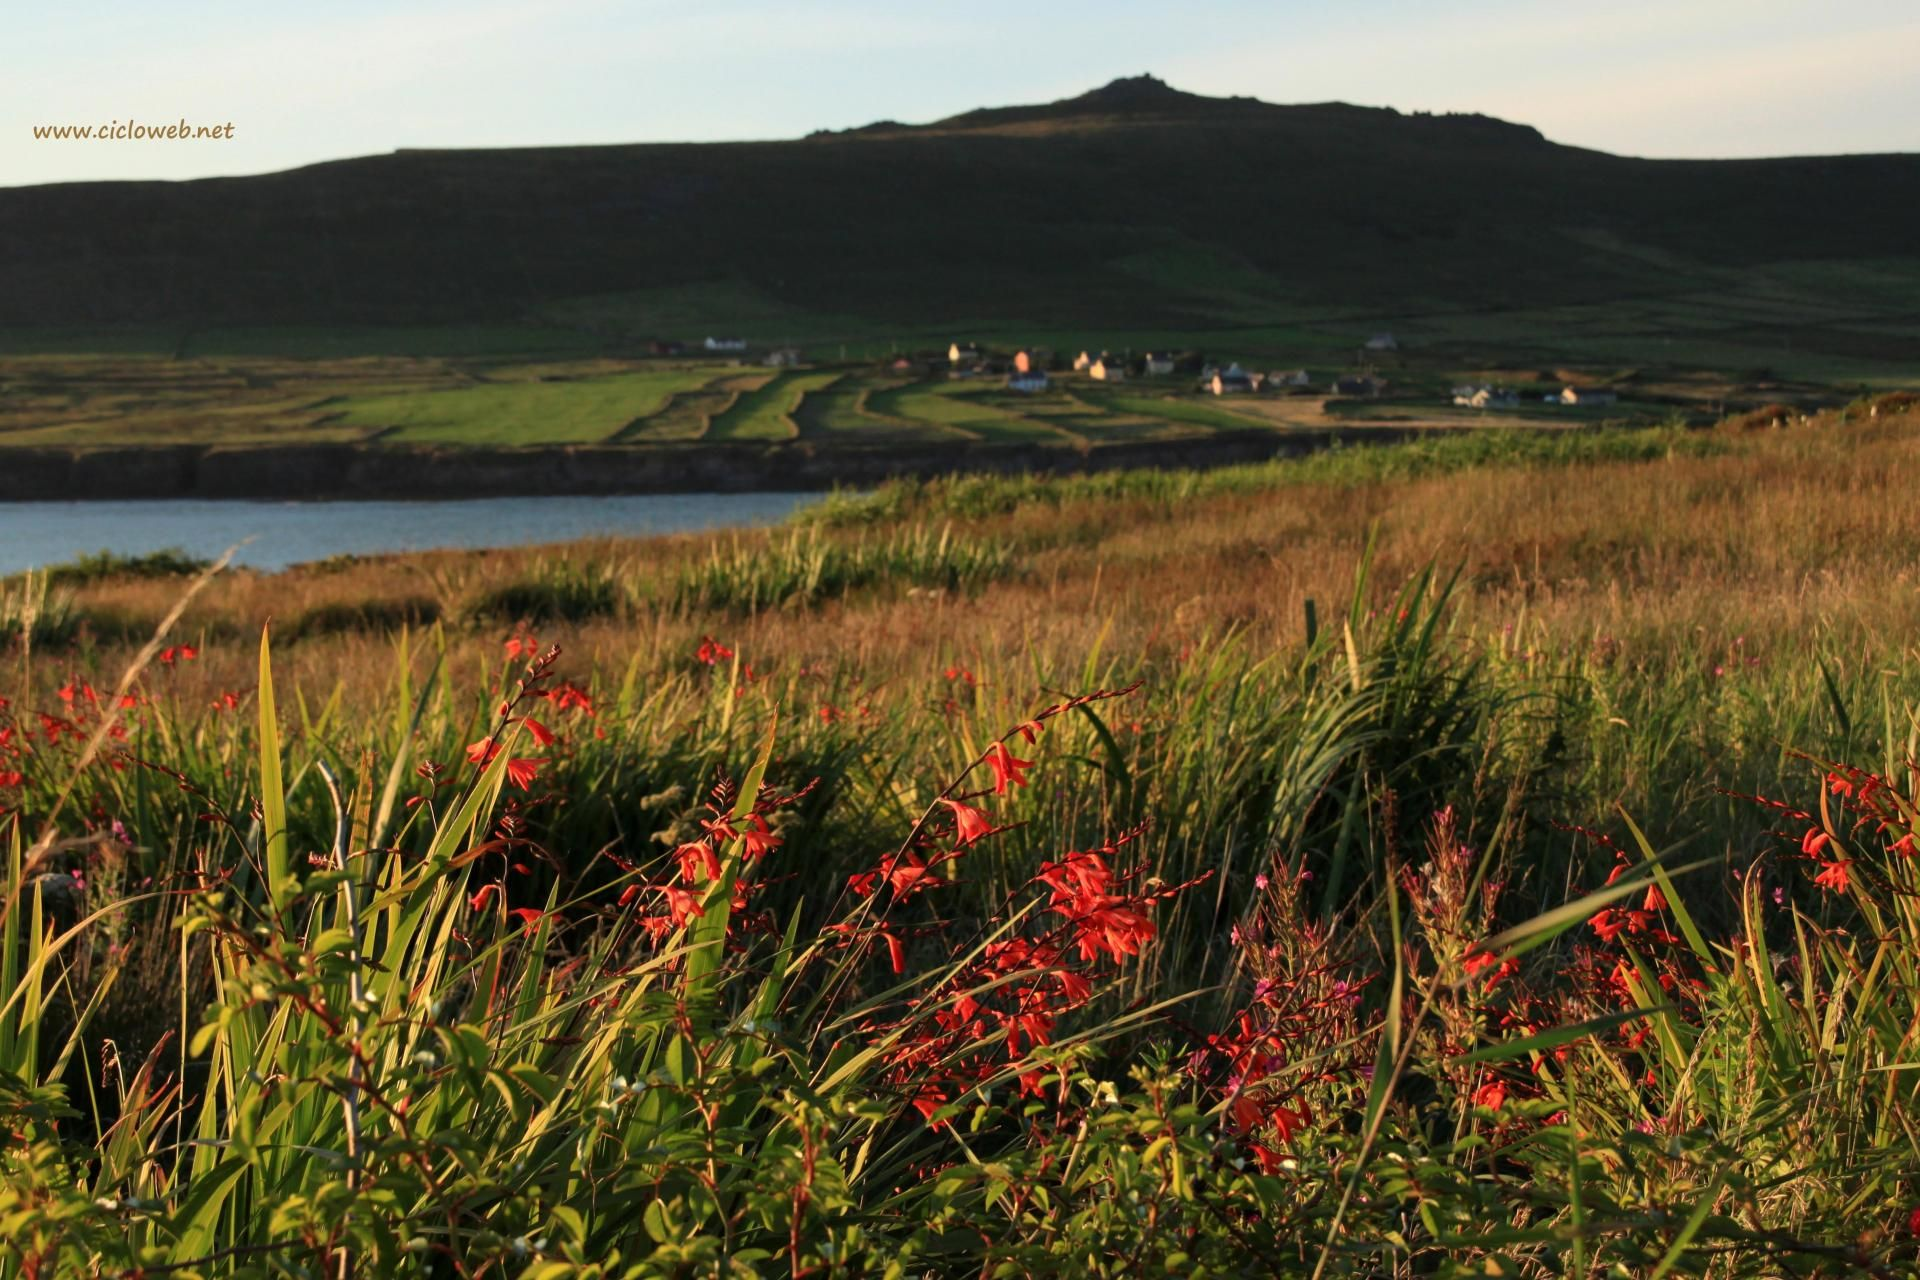 0914 - Verso ovest, dal Clifftop, Dingle Peninsula.JPG